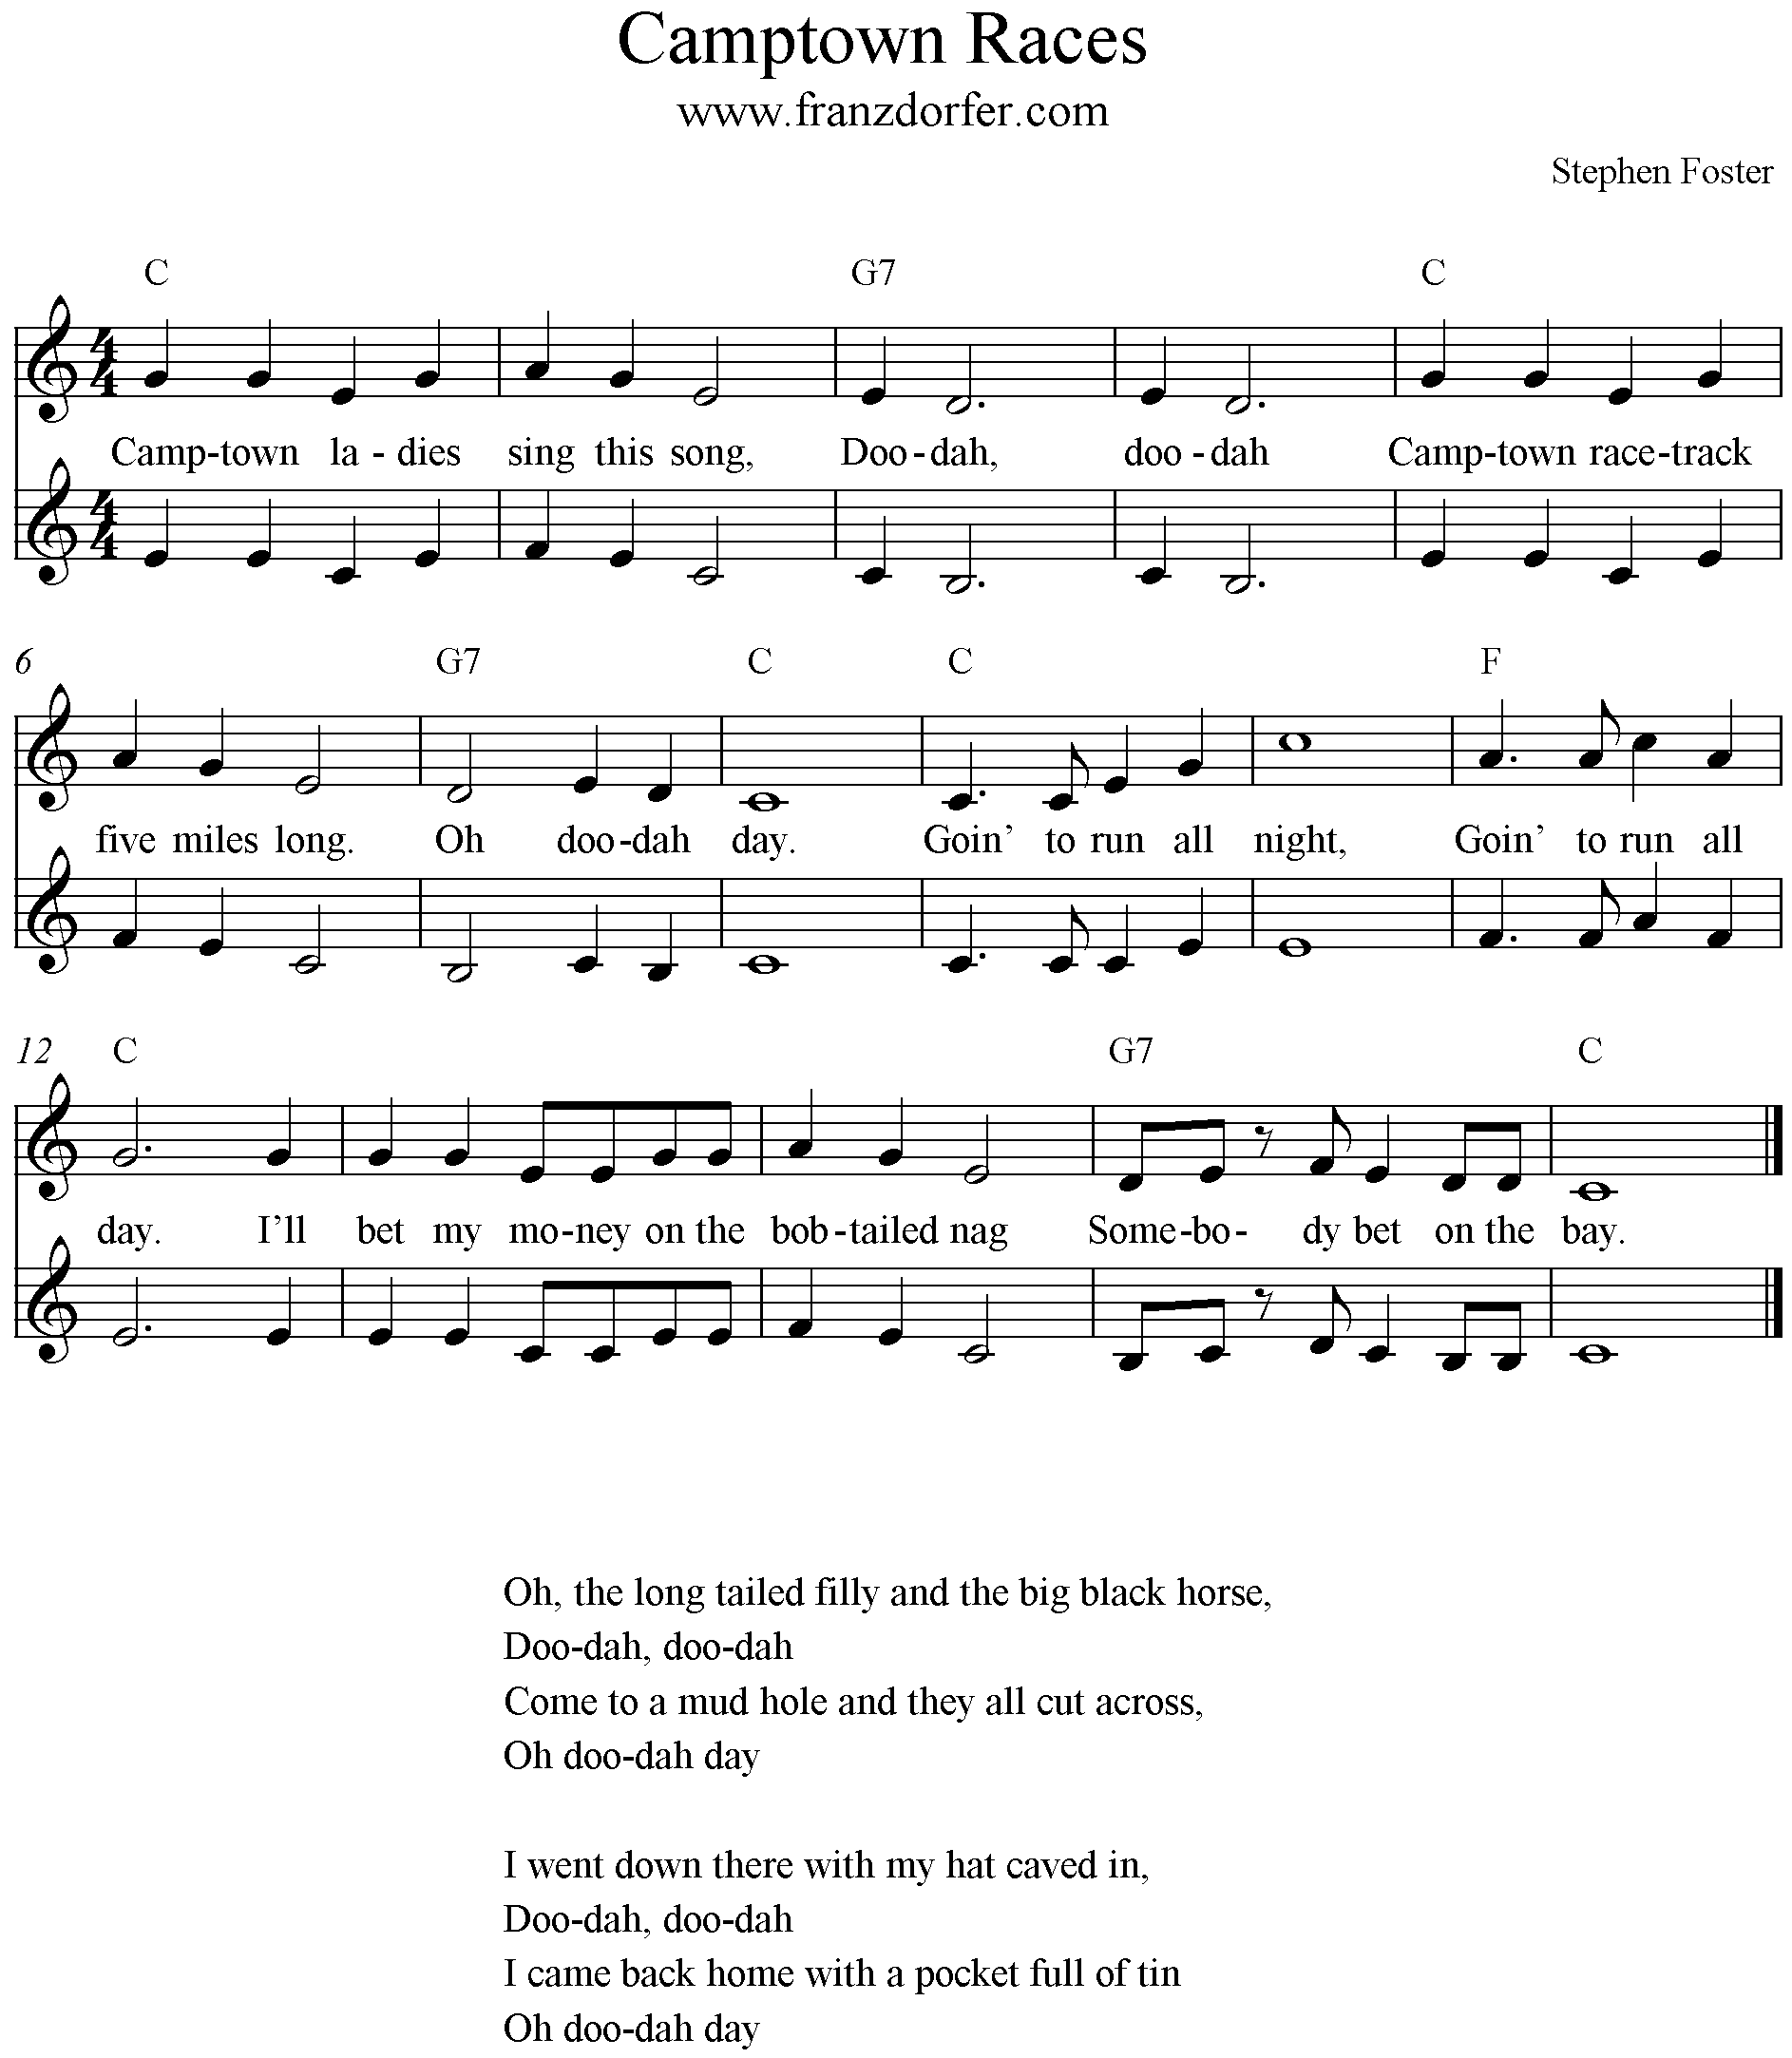 Sheetmusic Camptown Races